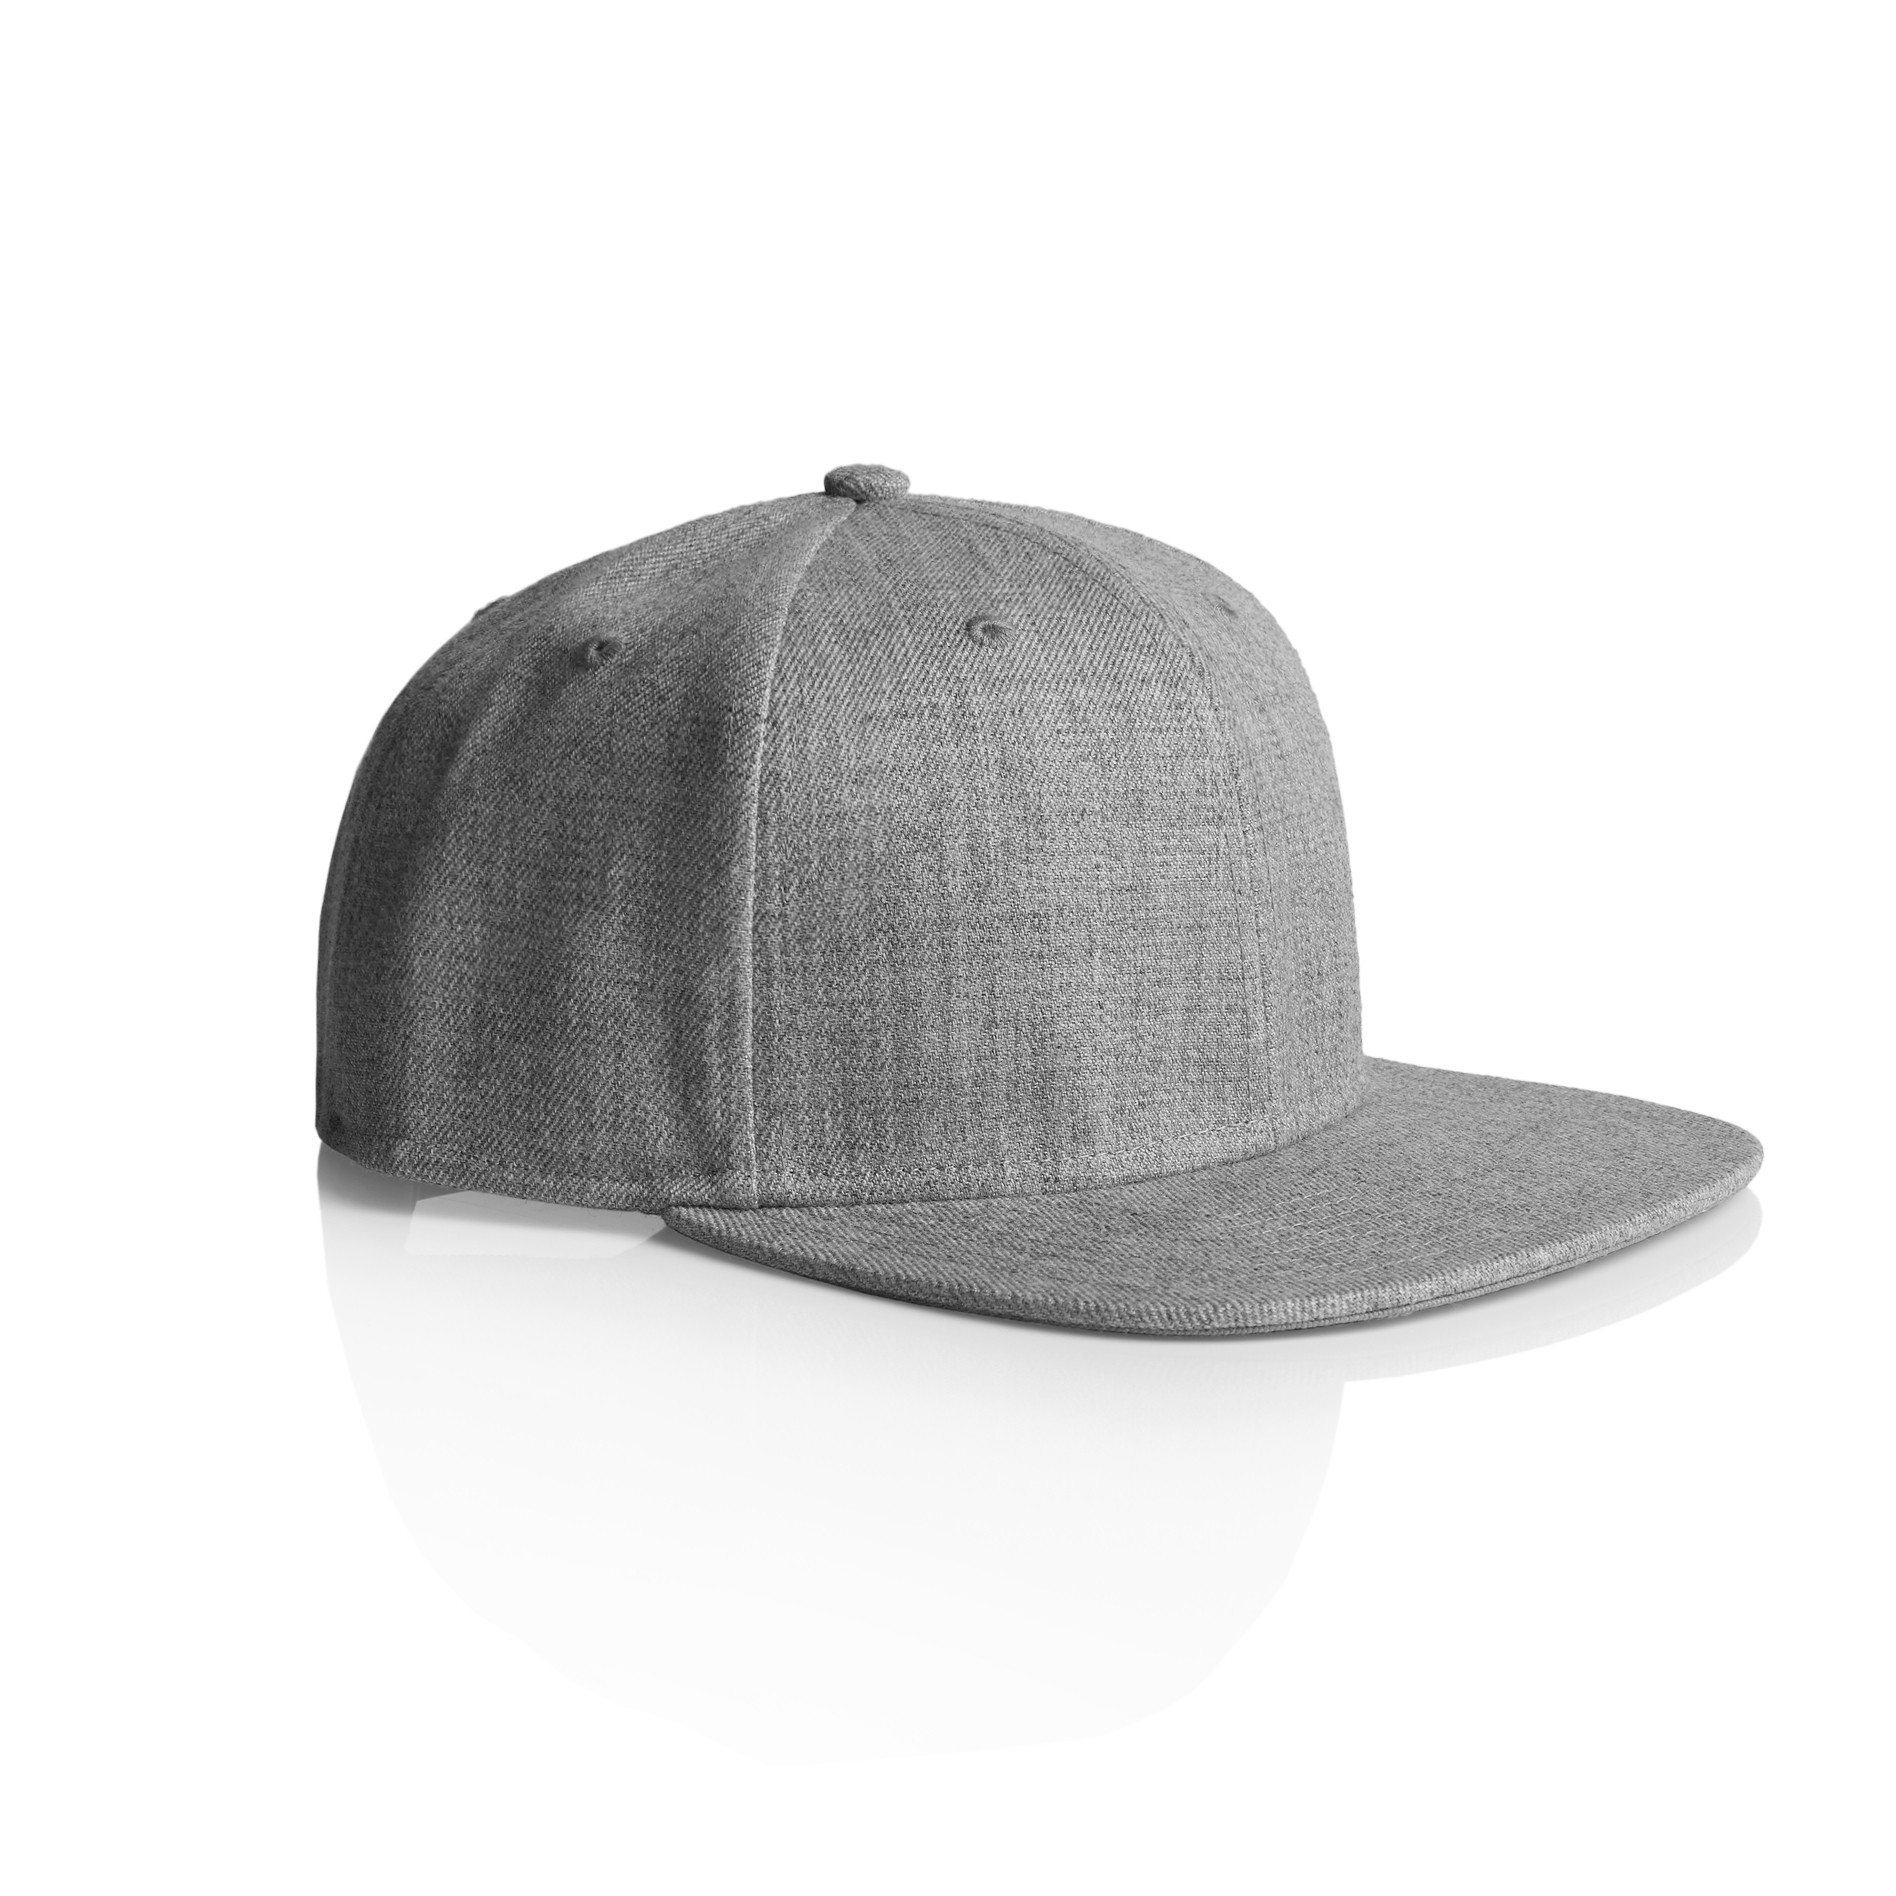 1100_stock_cap_grey_marle.jpg